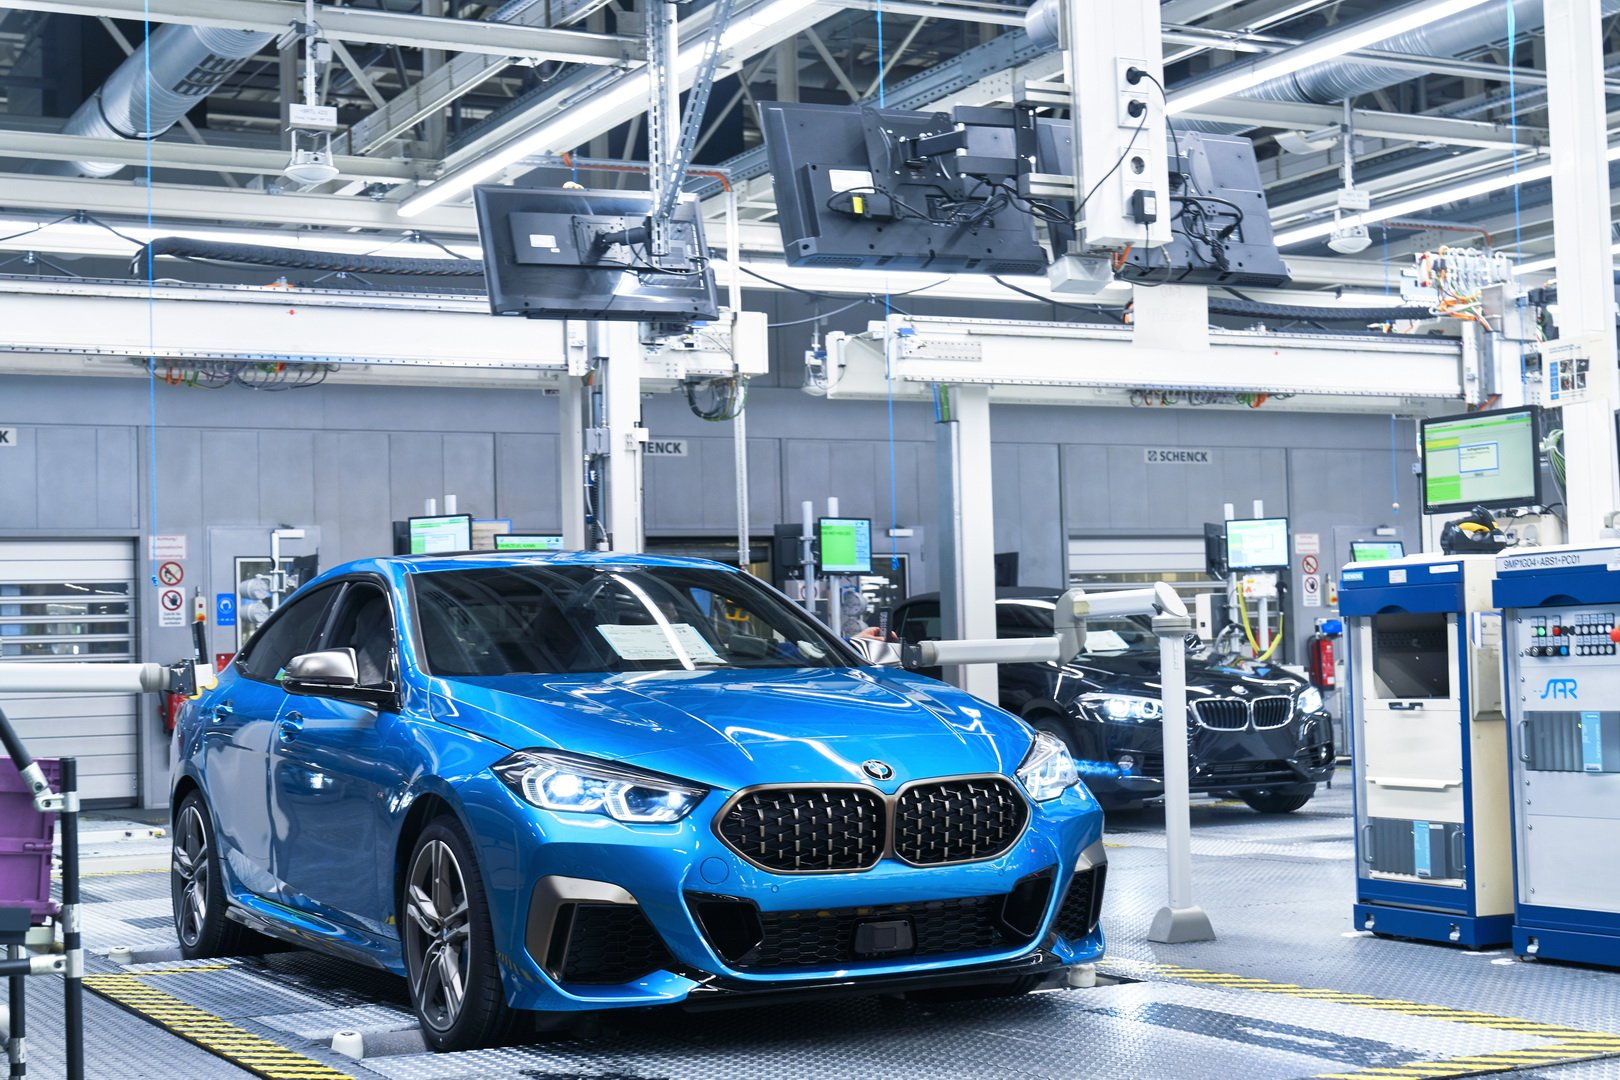 2020-bmw-2-series-gran-coupe-production-leipzig-14